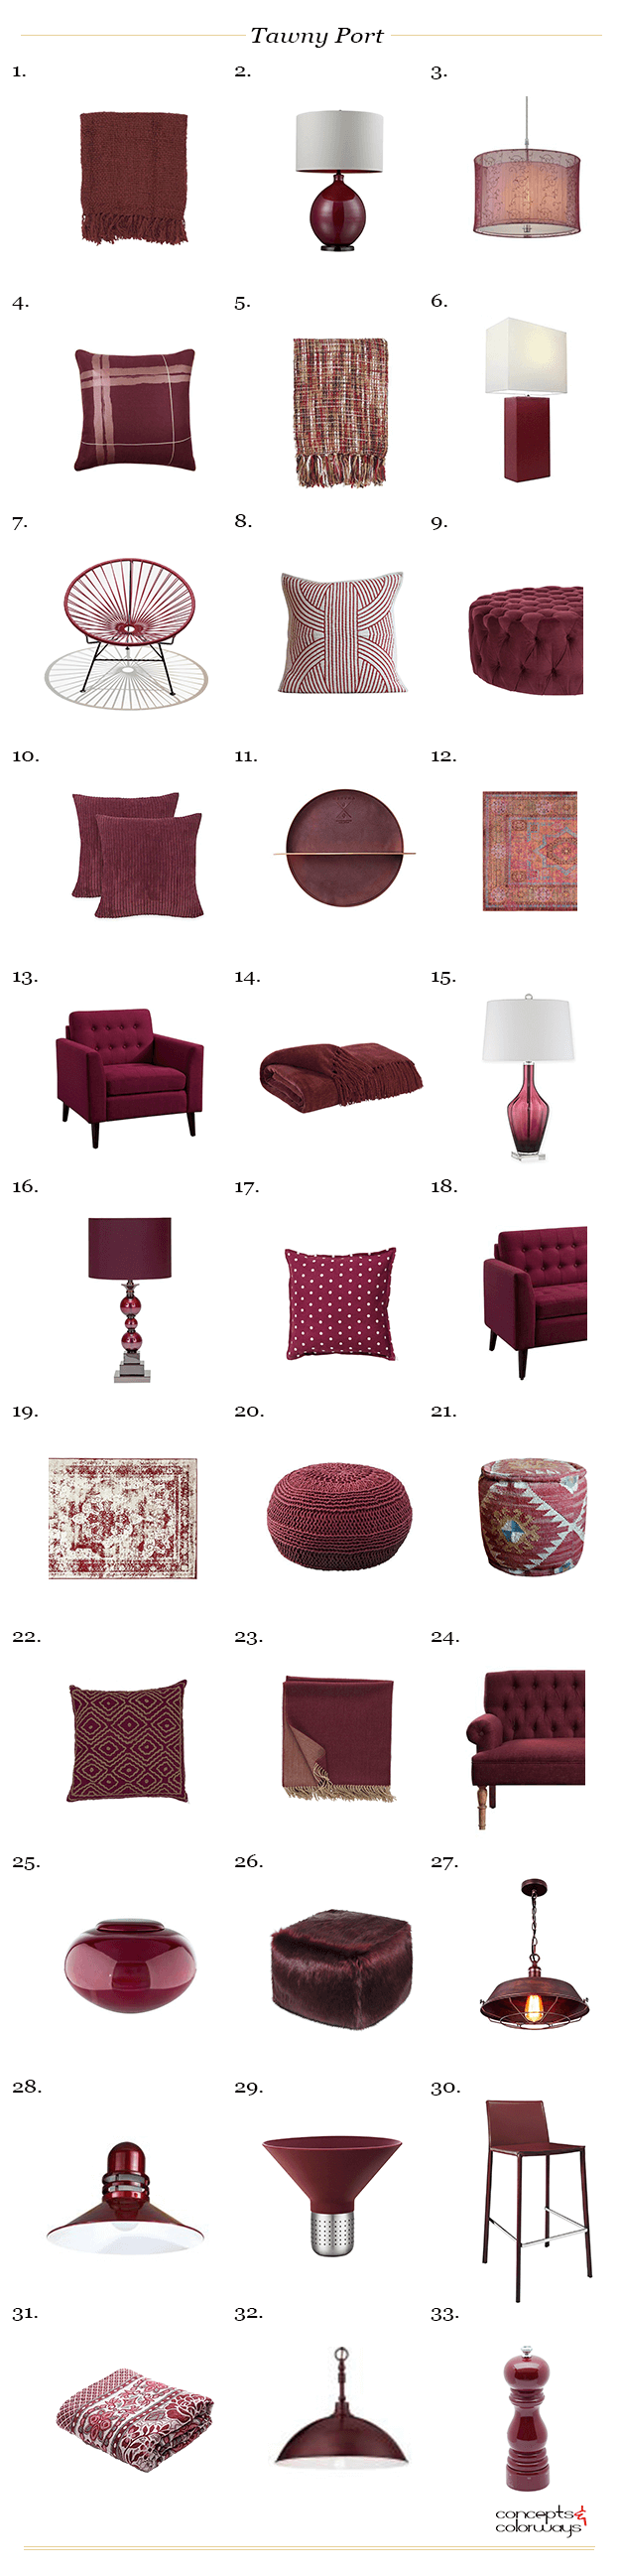 pantone tawny port interior design product roundup